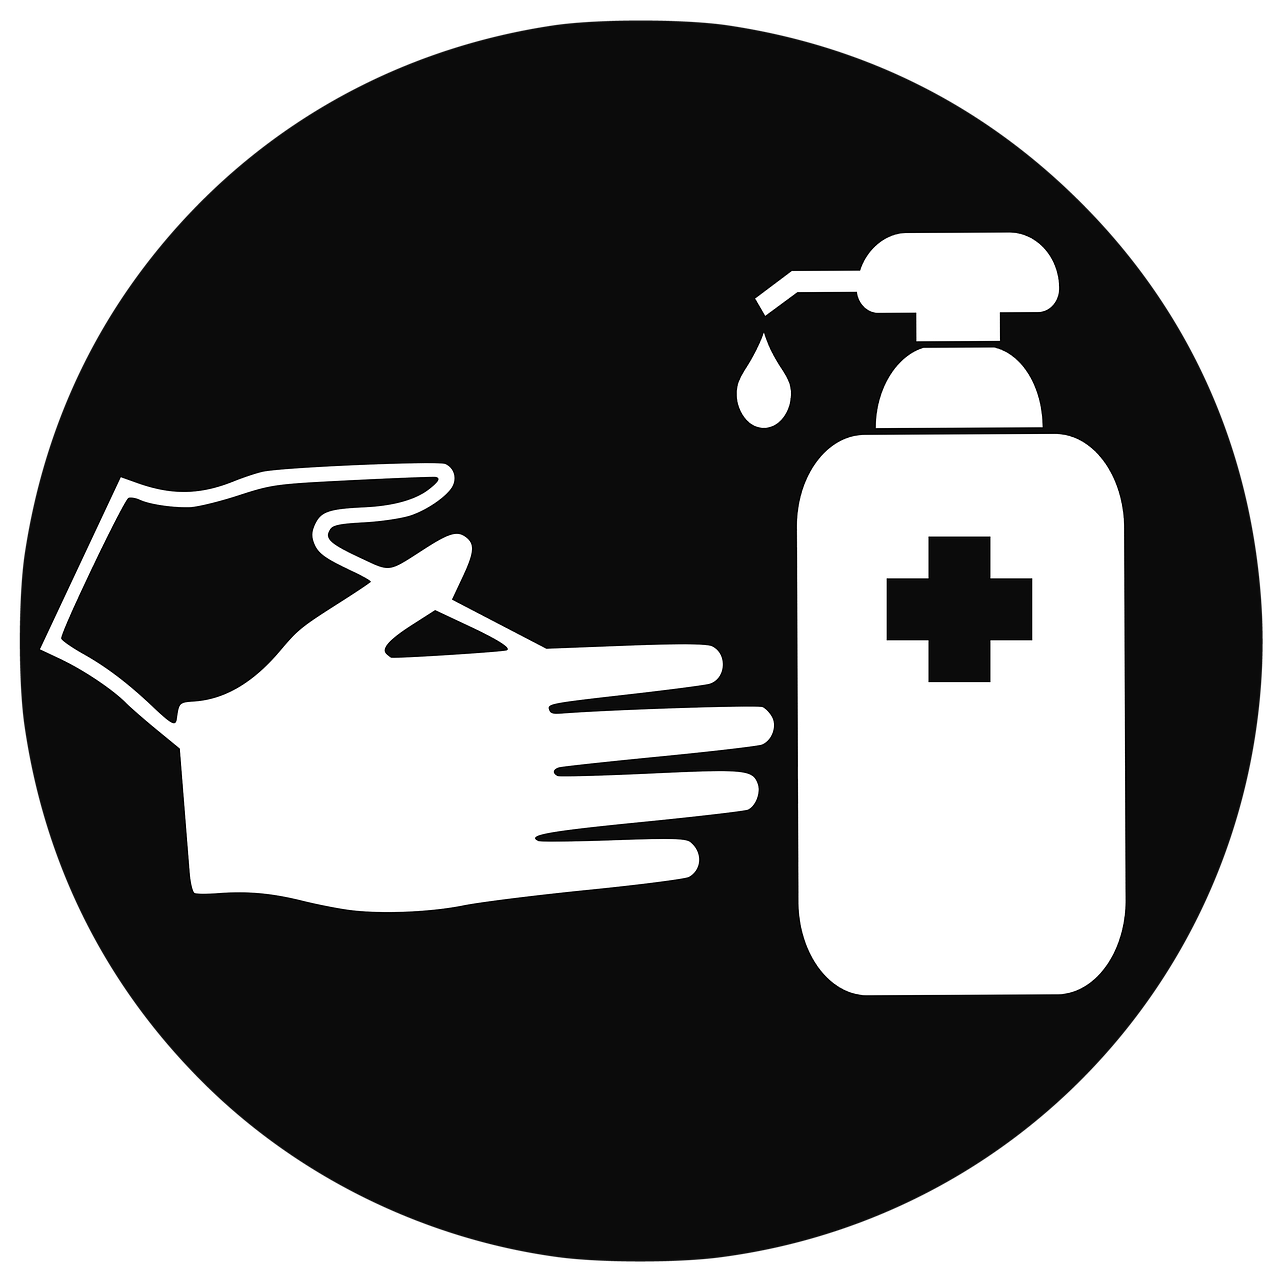 Covid 19 Coronavirus Hand Free Image On Pixabay Mobile phones telephone call blackphone logo, phone icon black and white png. https creativecommons org licenses publicdomain